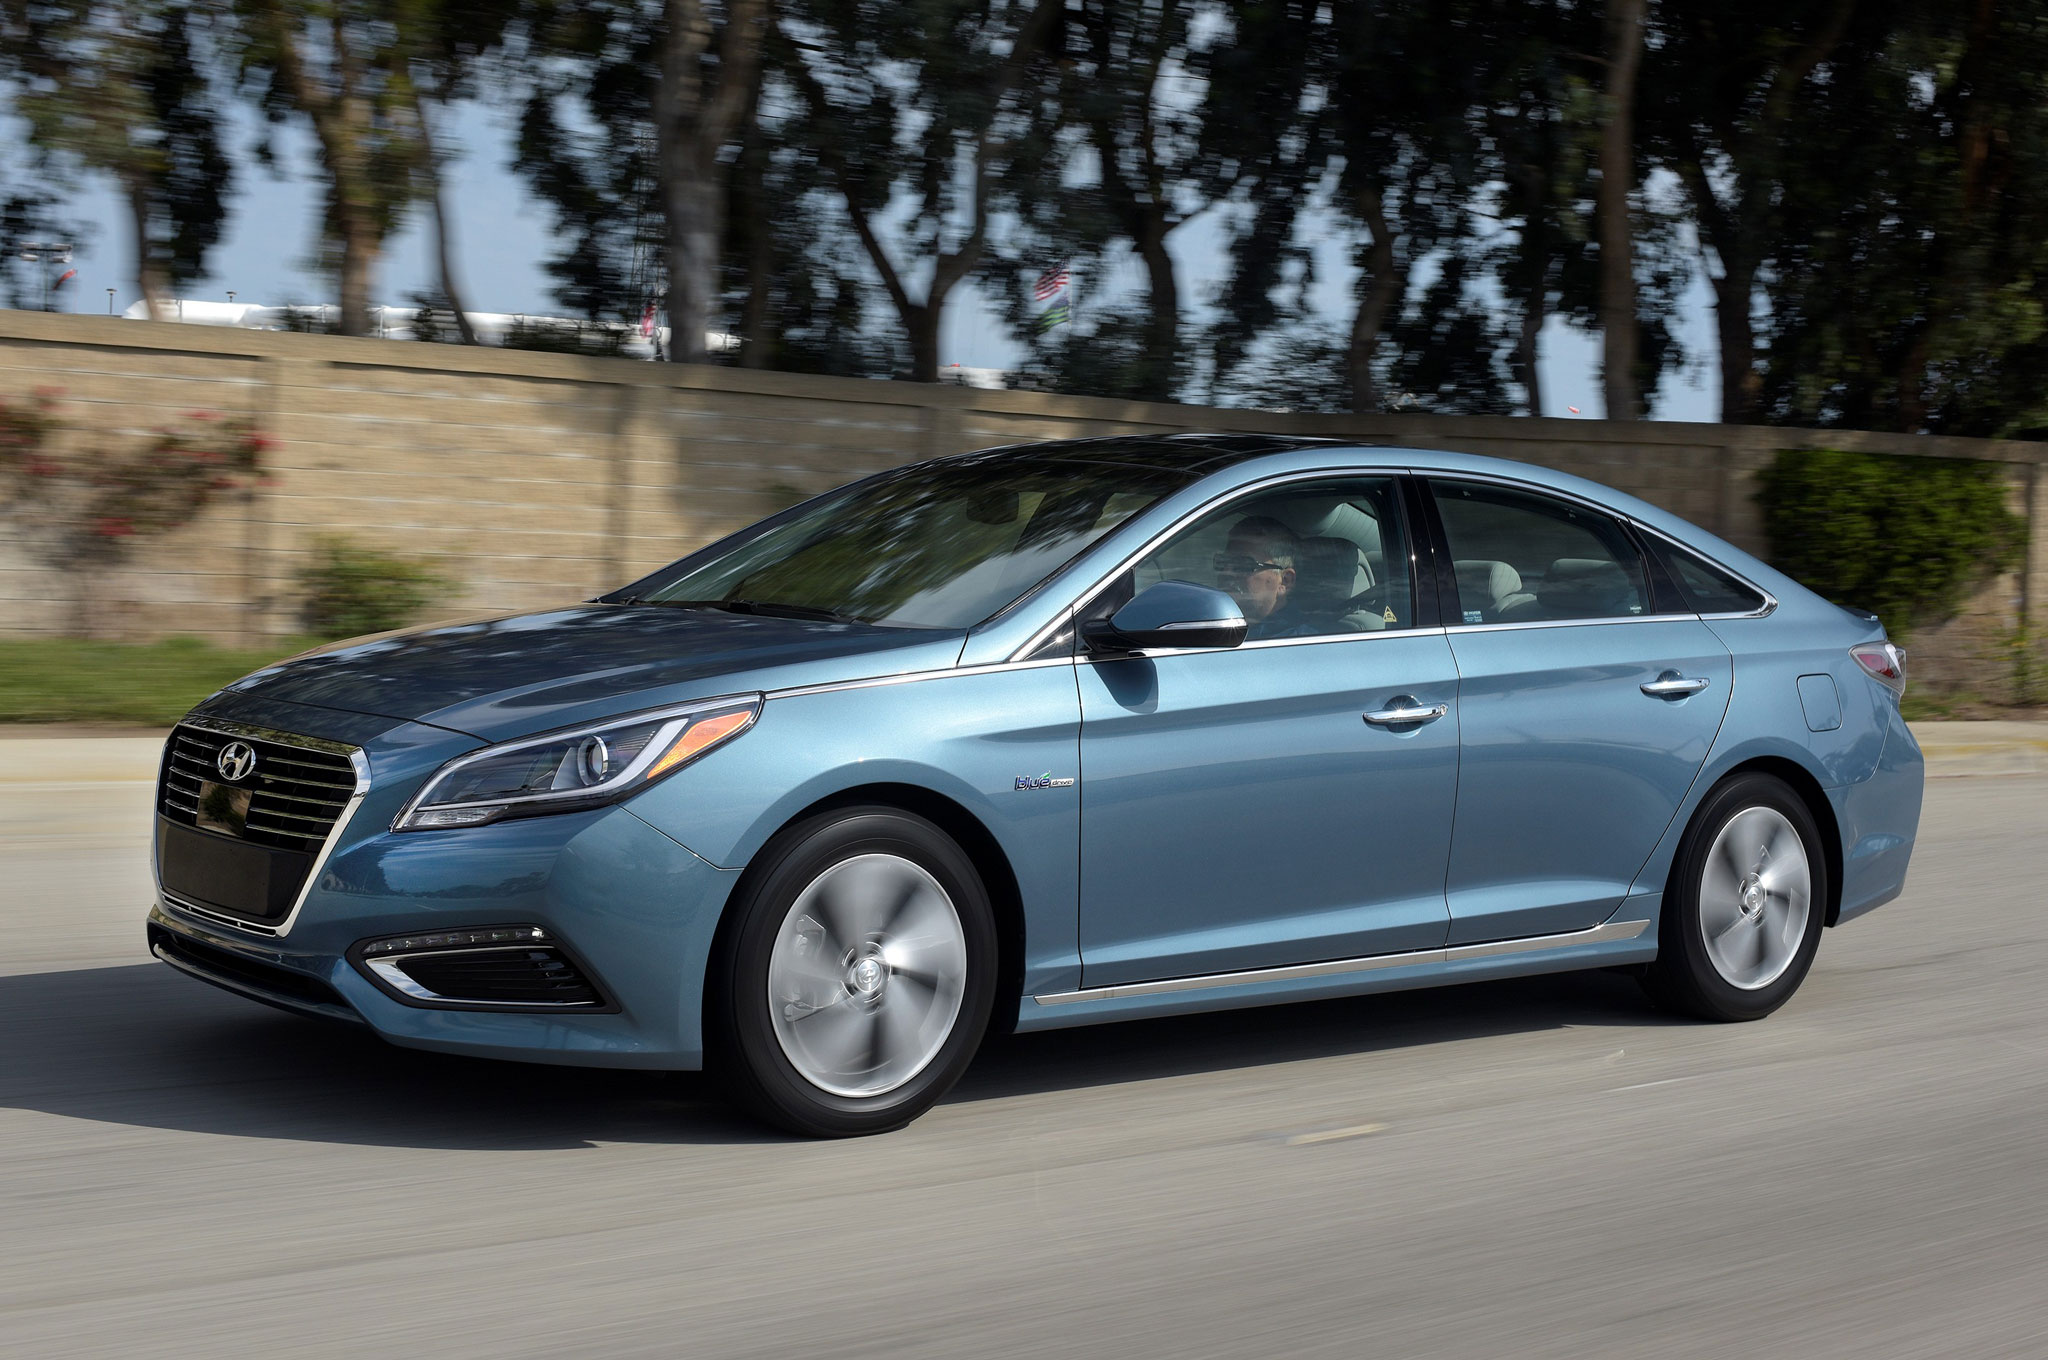 2016 hyundai sonata hybrid and phev review. Black Bedroom Furniture Sets. Home Design Ideas